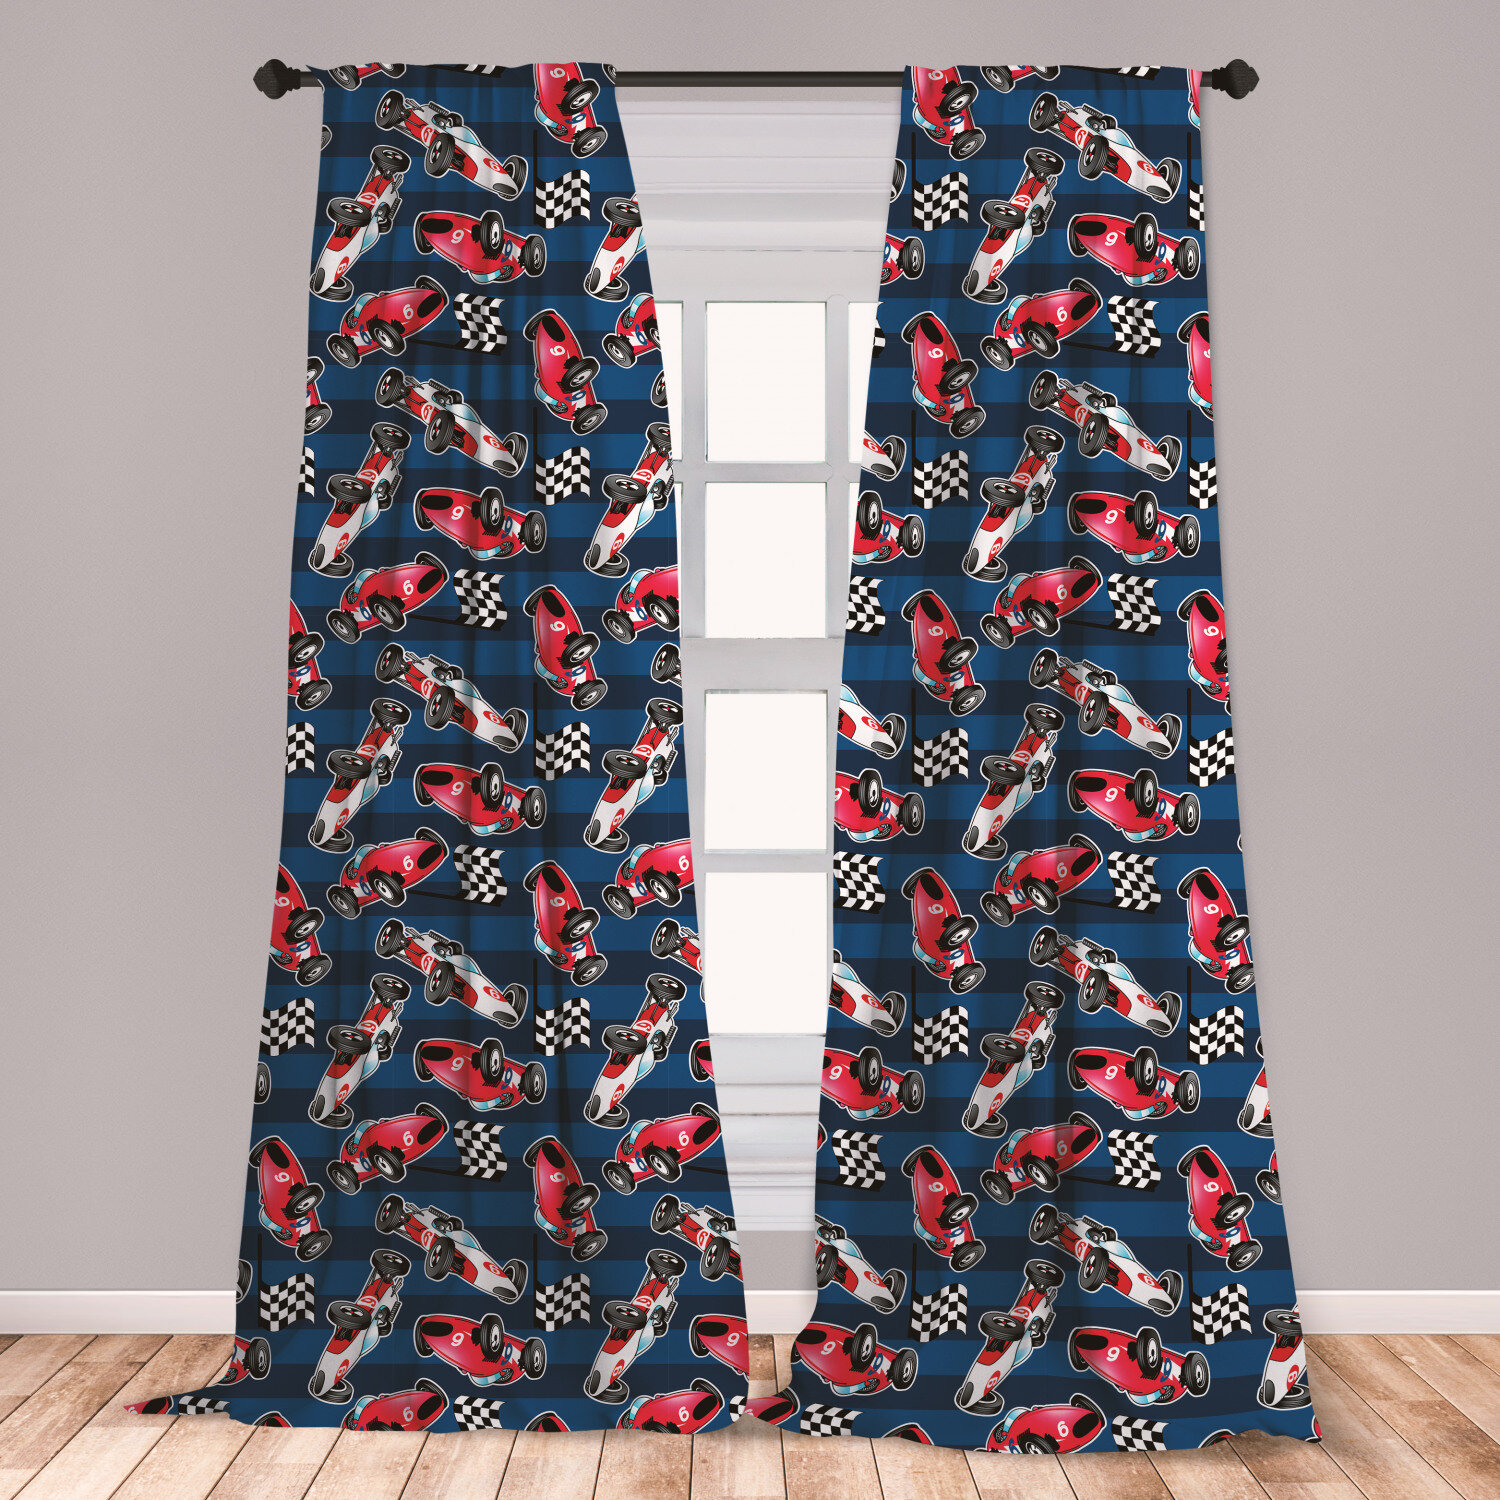 East Urban Home Ambesonne Cars Curtains Vintage Racing Cars On Blue Stripes With Checkered Flags Automobile Sports Window Treatments 2 Panel Set For Living Room Bedroom Decor 56 X 63 Navy Blue